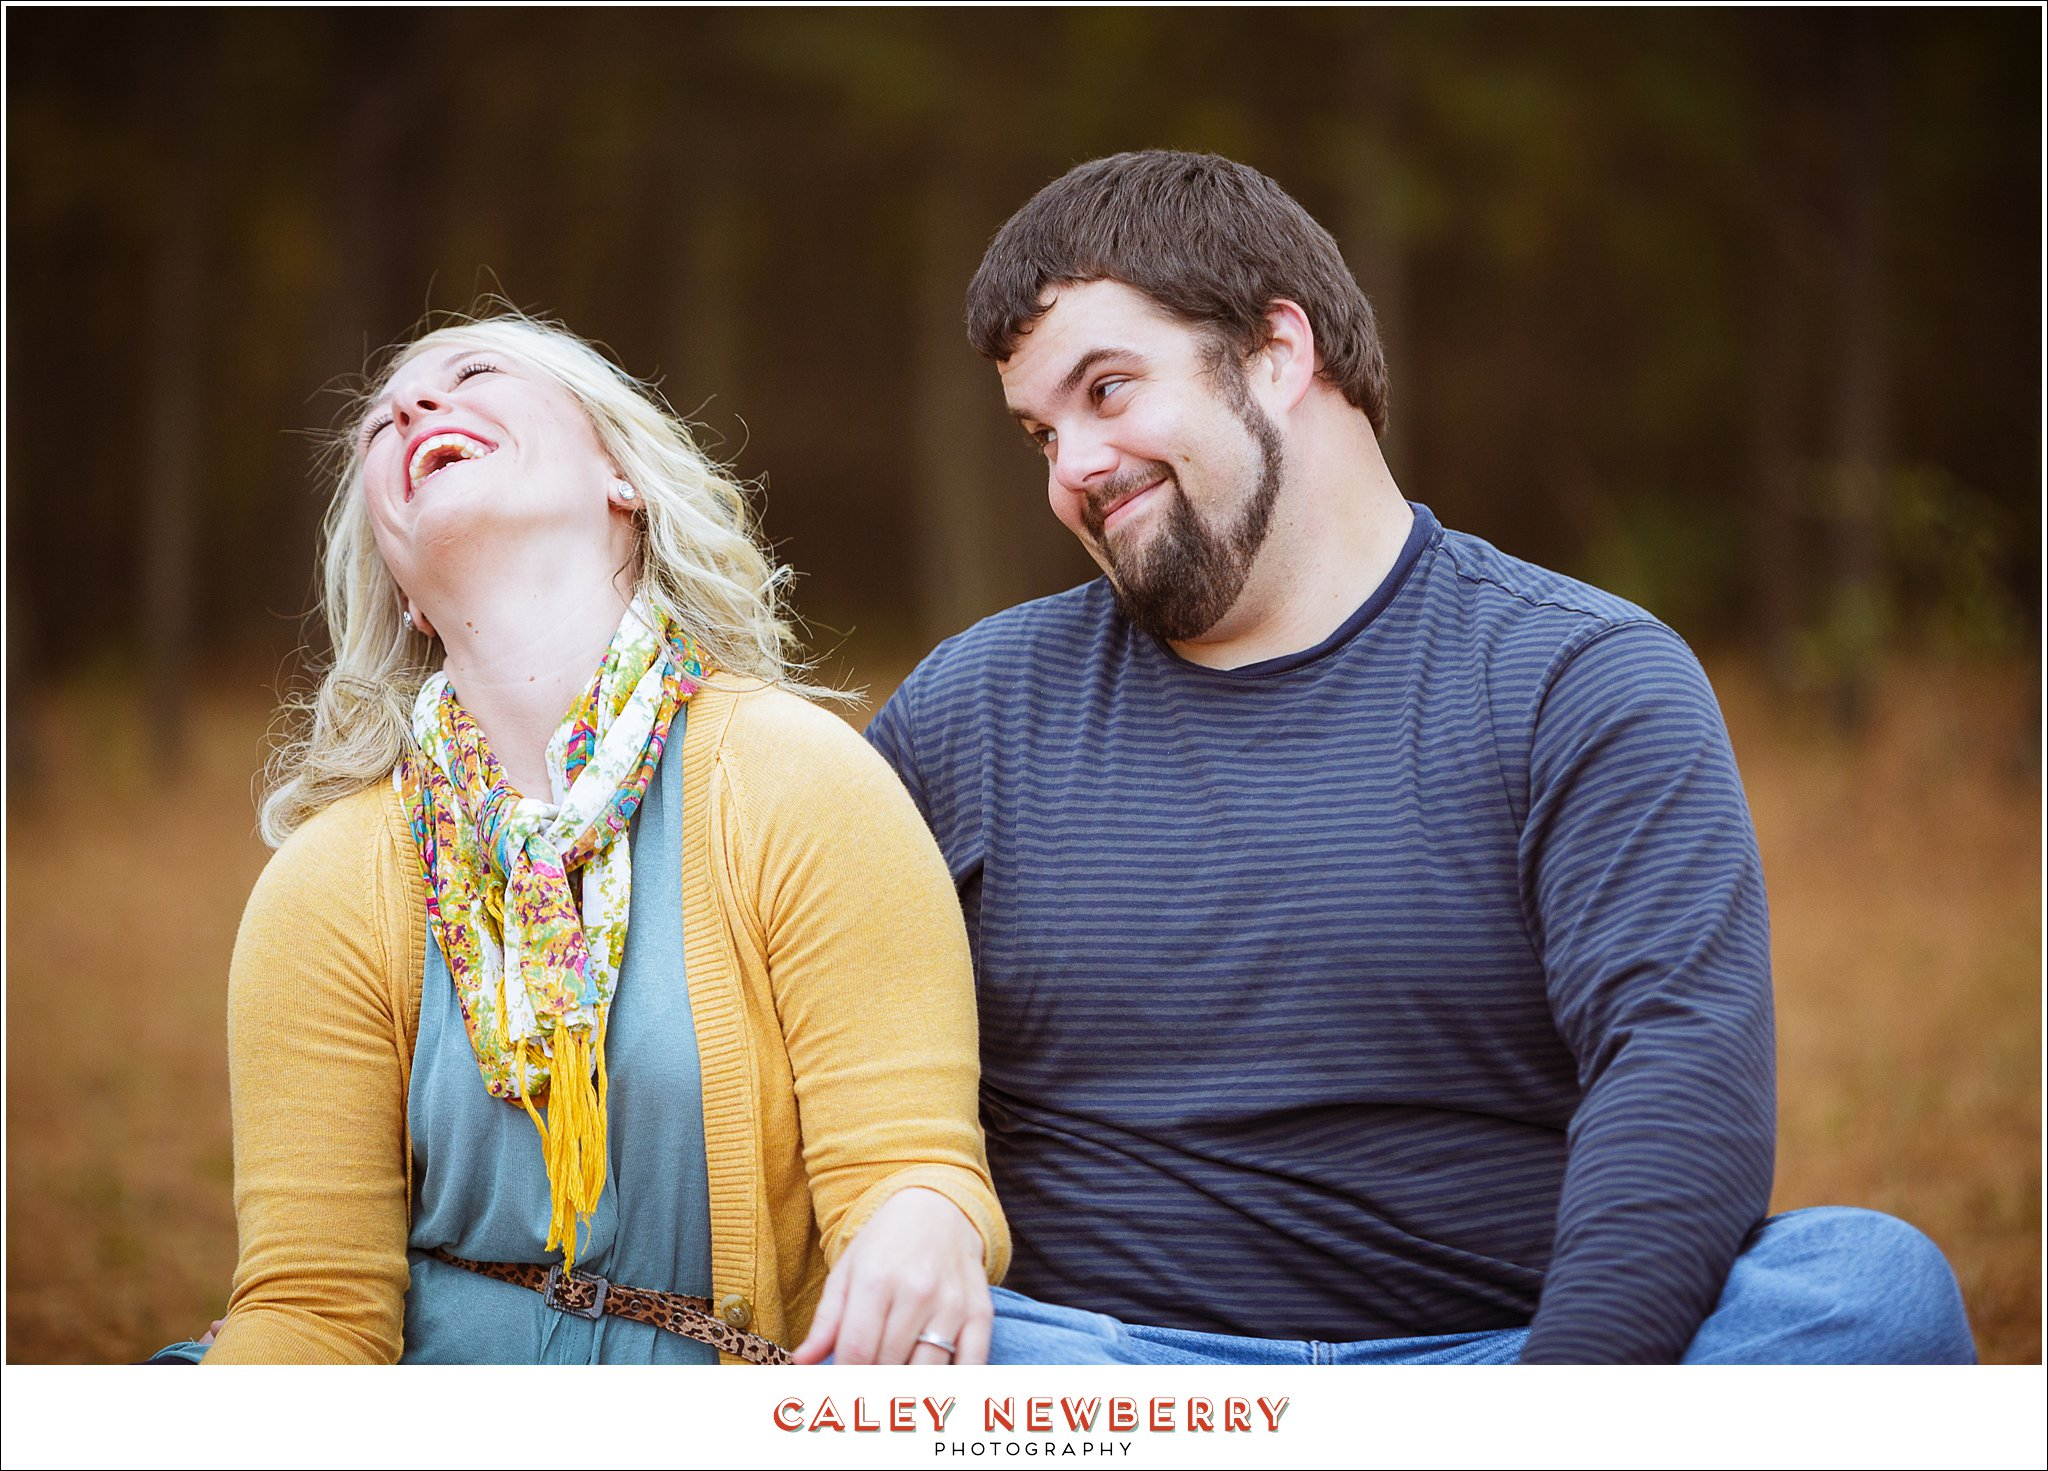 alabama engagement, fall engagement session, nashville photographer, nashville fall engagement, alabama wedding photographer, caley newberry photography, emily hill,